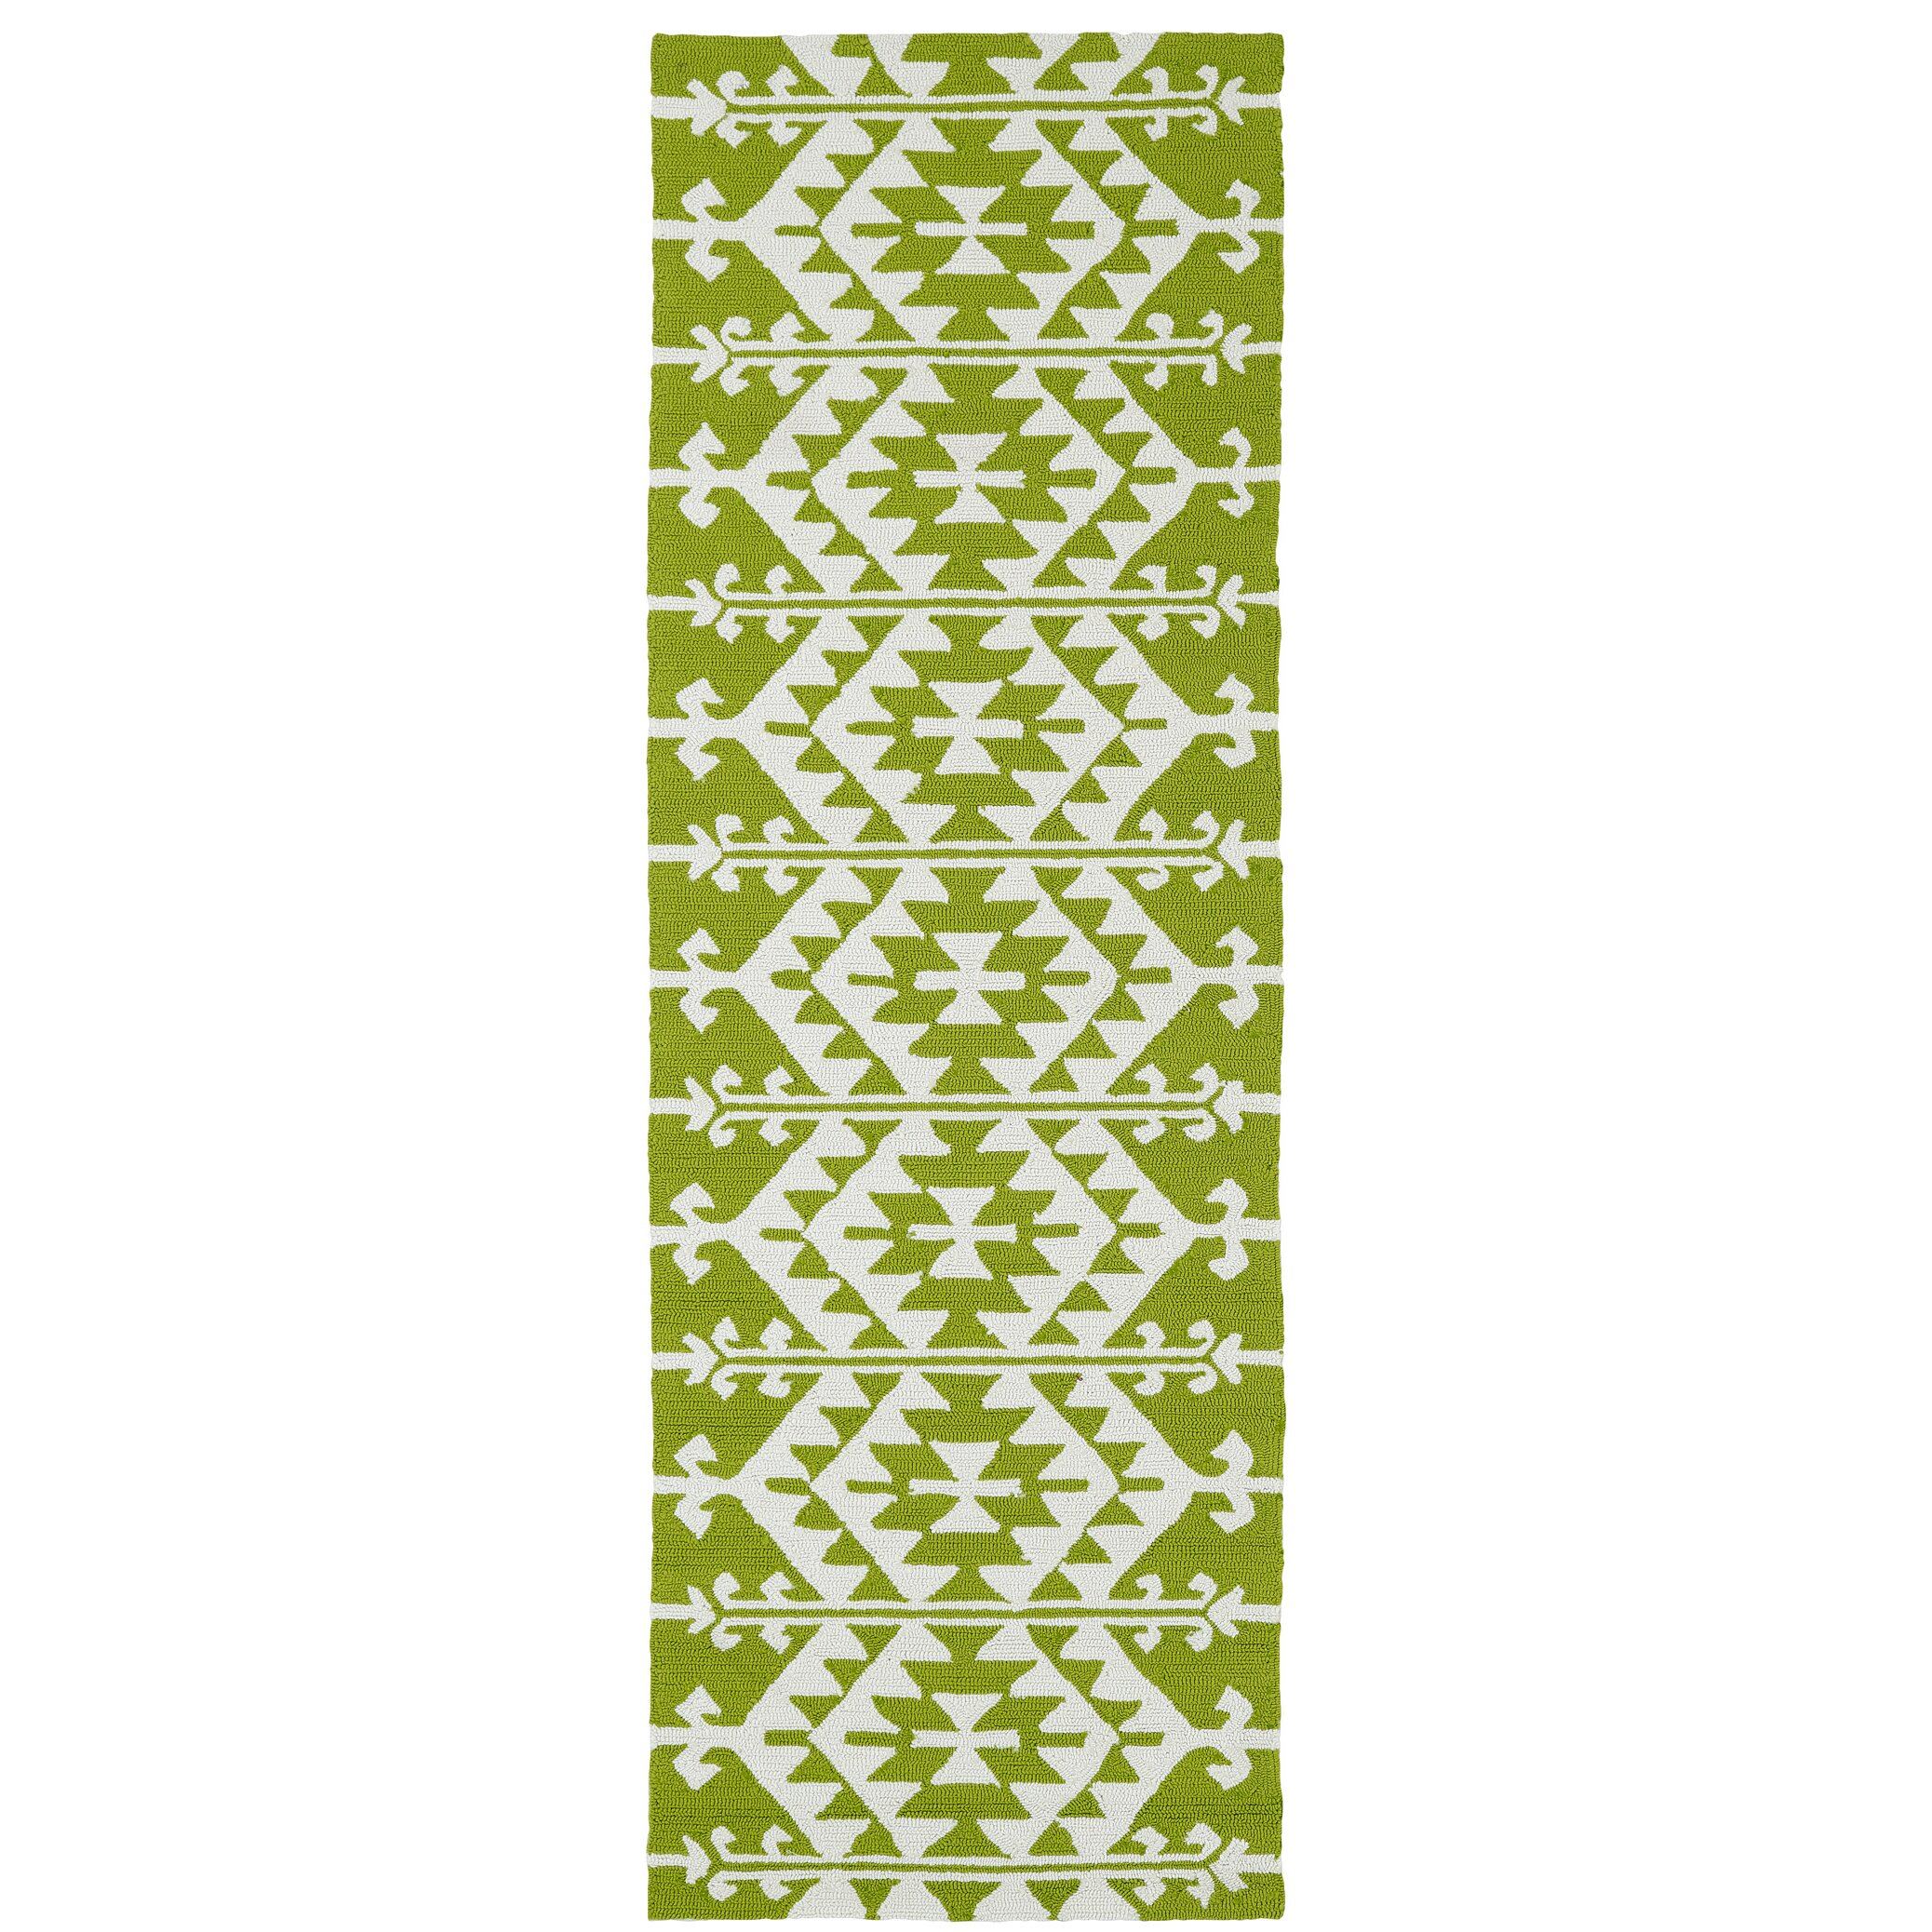 Lime Green Outdoor Area Rug: Varick Gallery Lime Green/Ivory Indoor/Outdoor Area Rug